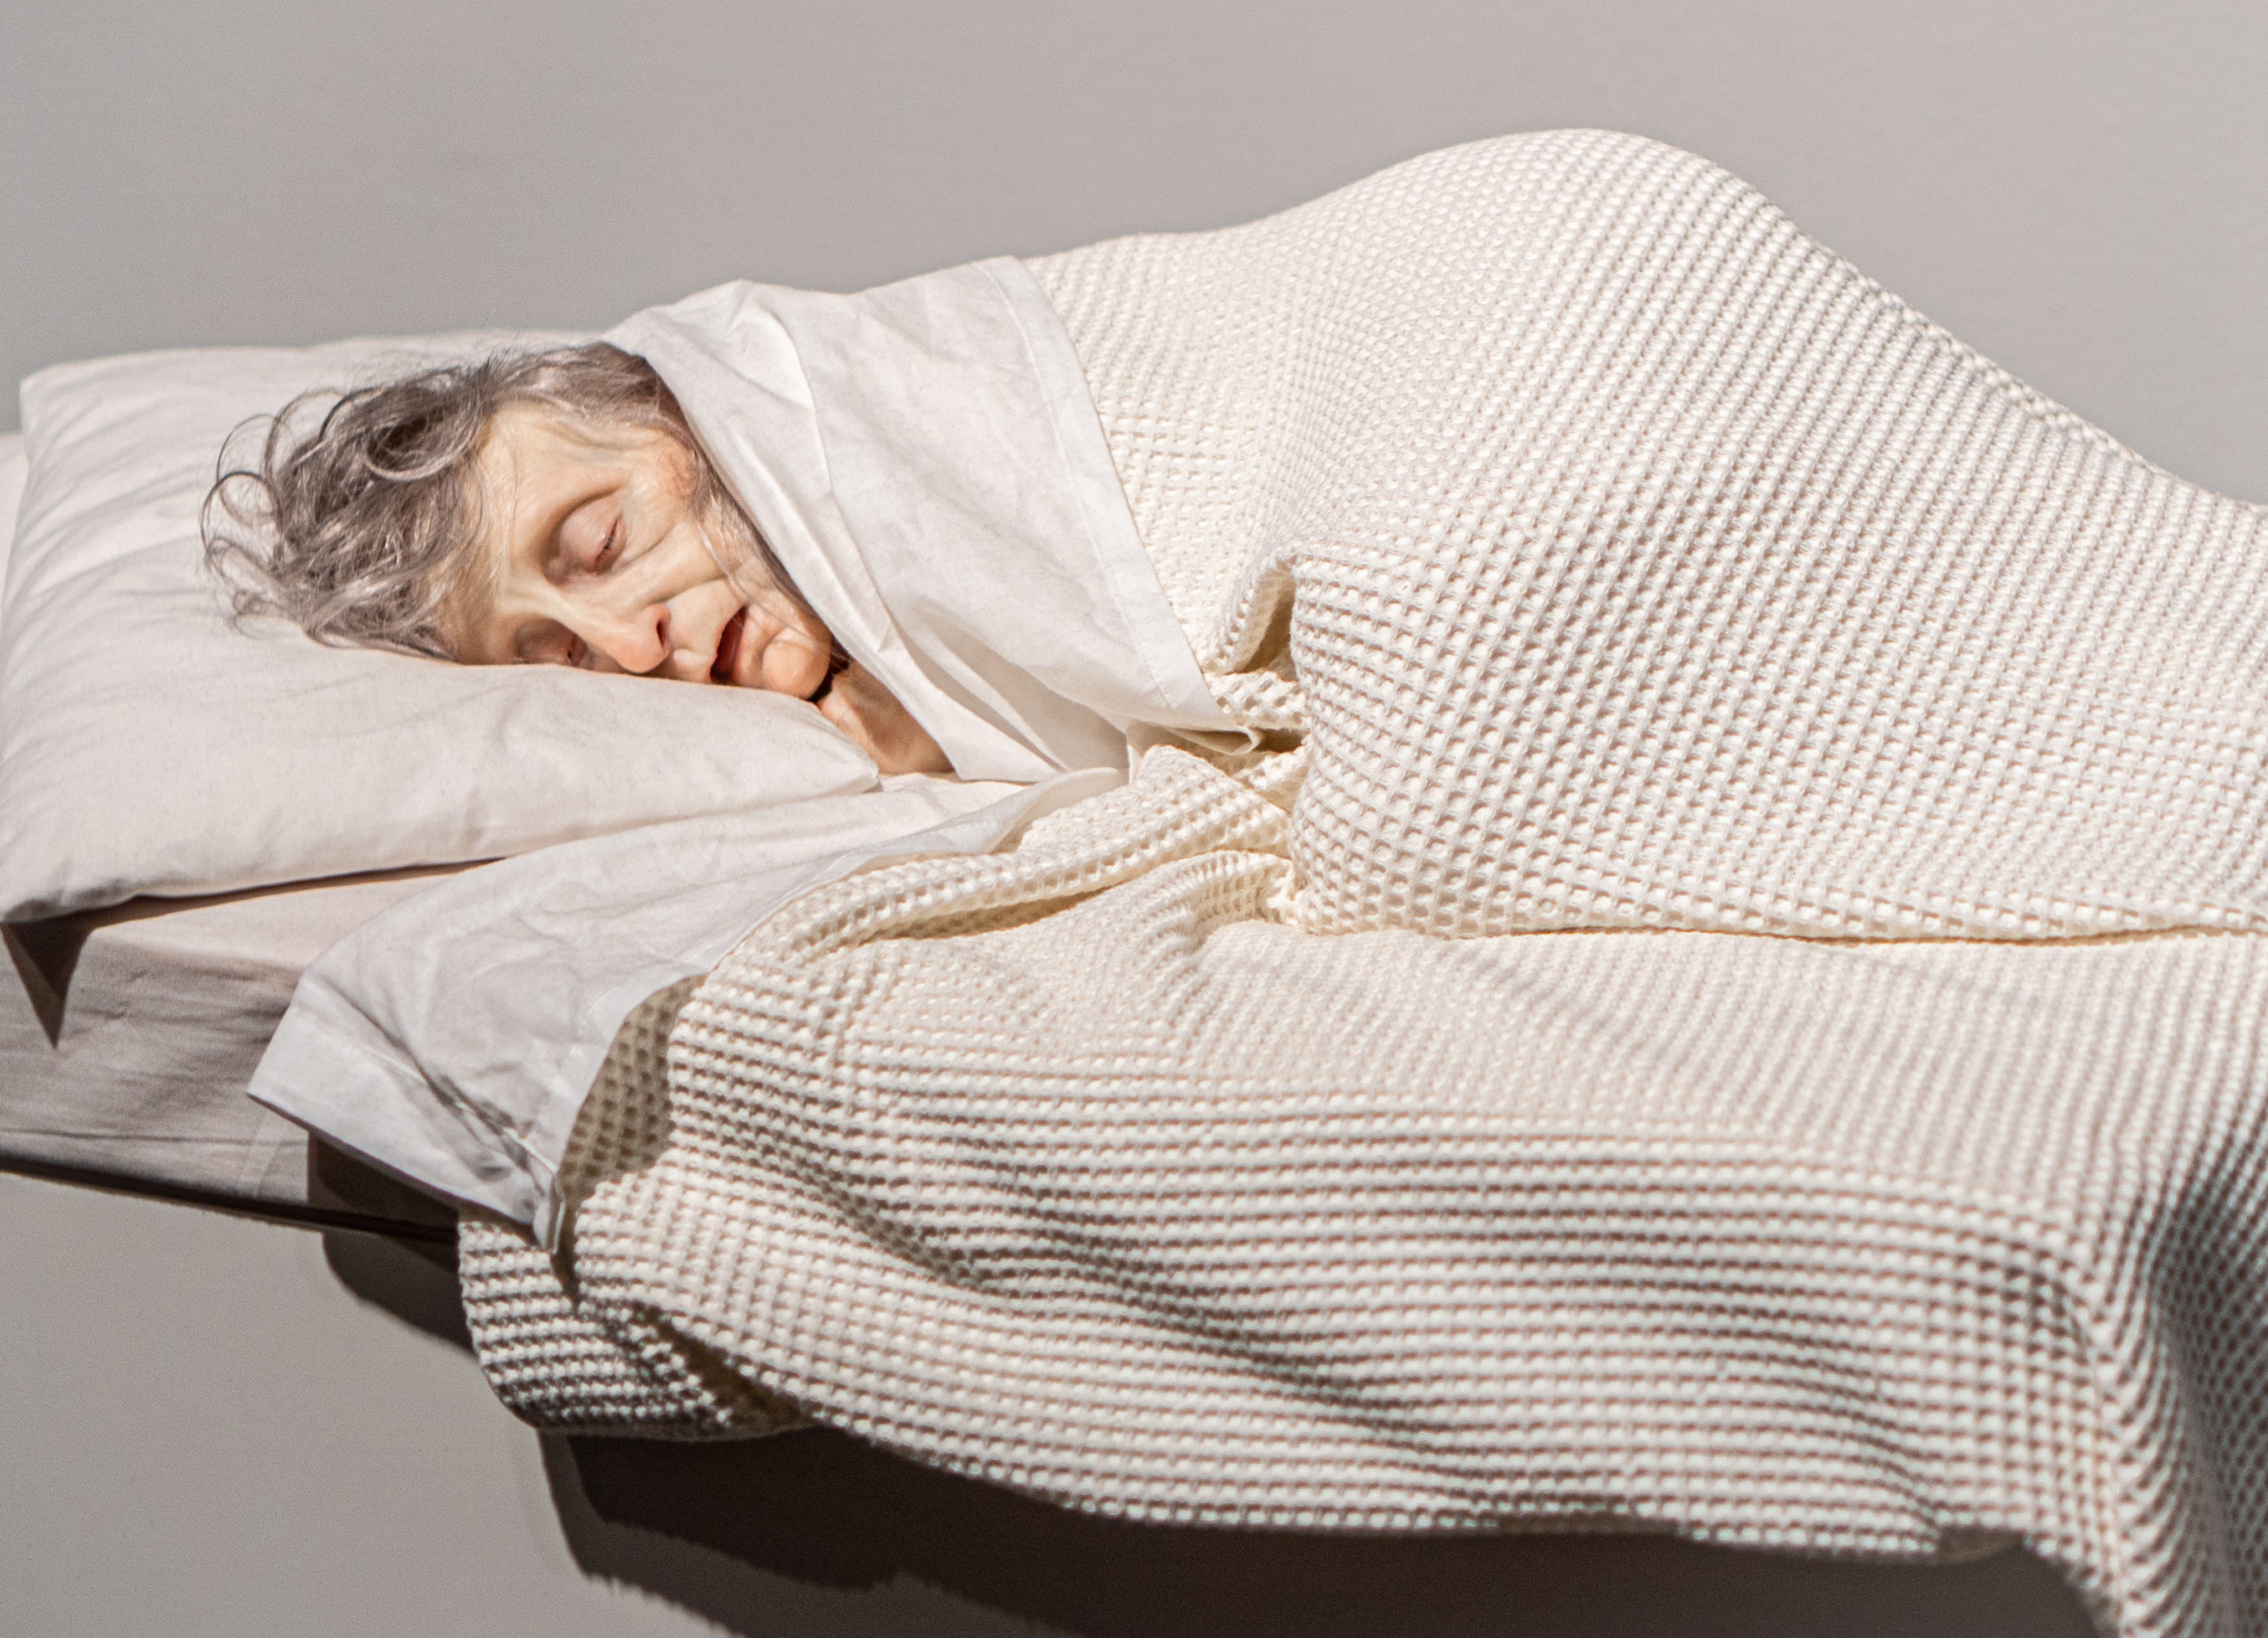 Ron Mueck - Old woman in bed